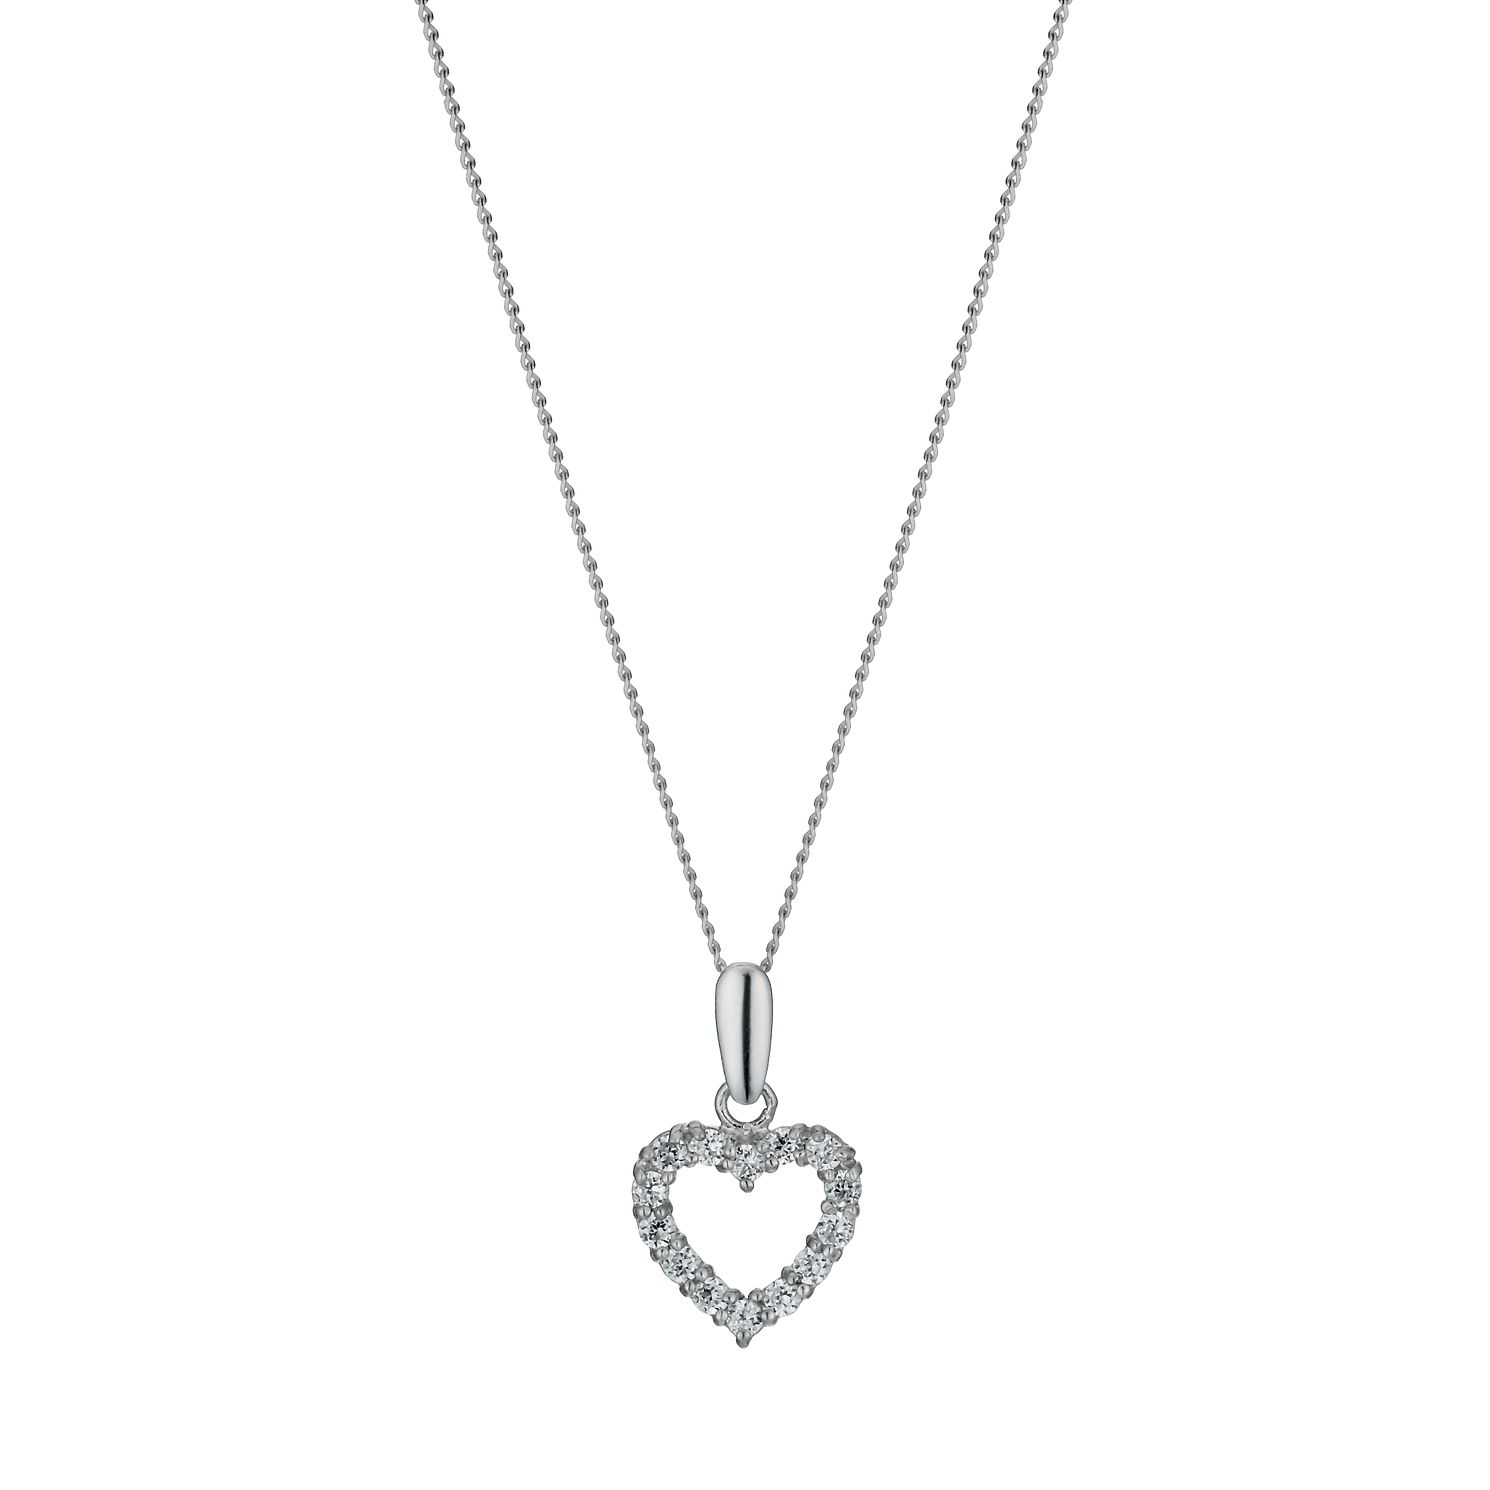 9ct White Gold 18 inches Cubic Zirconia Heart Pendant - Product number 1109936